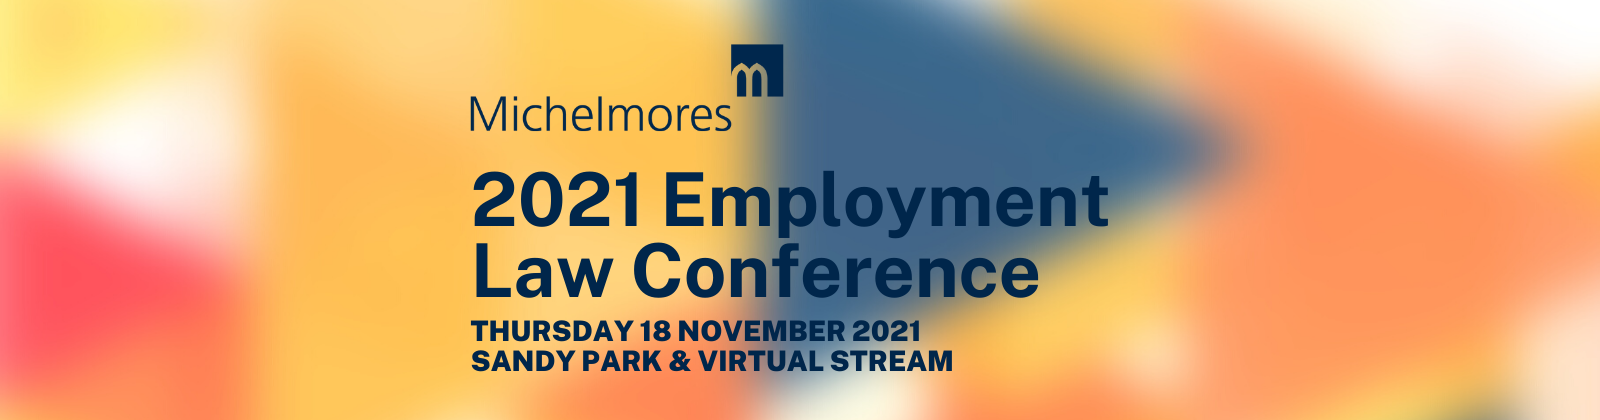 Employment Law Conference 2021